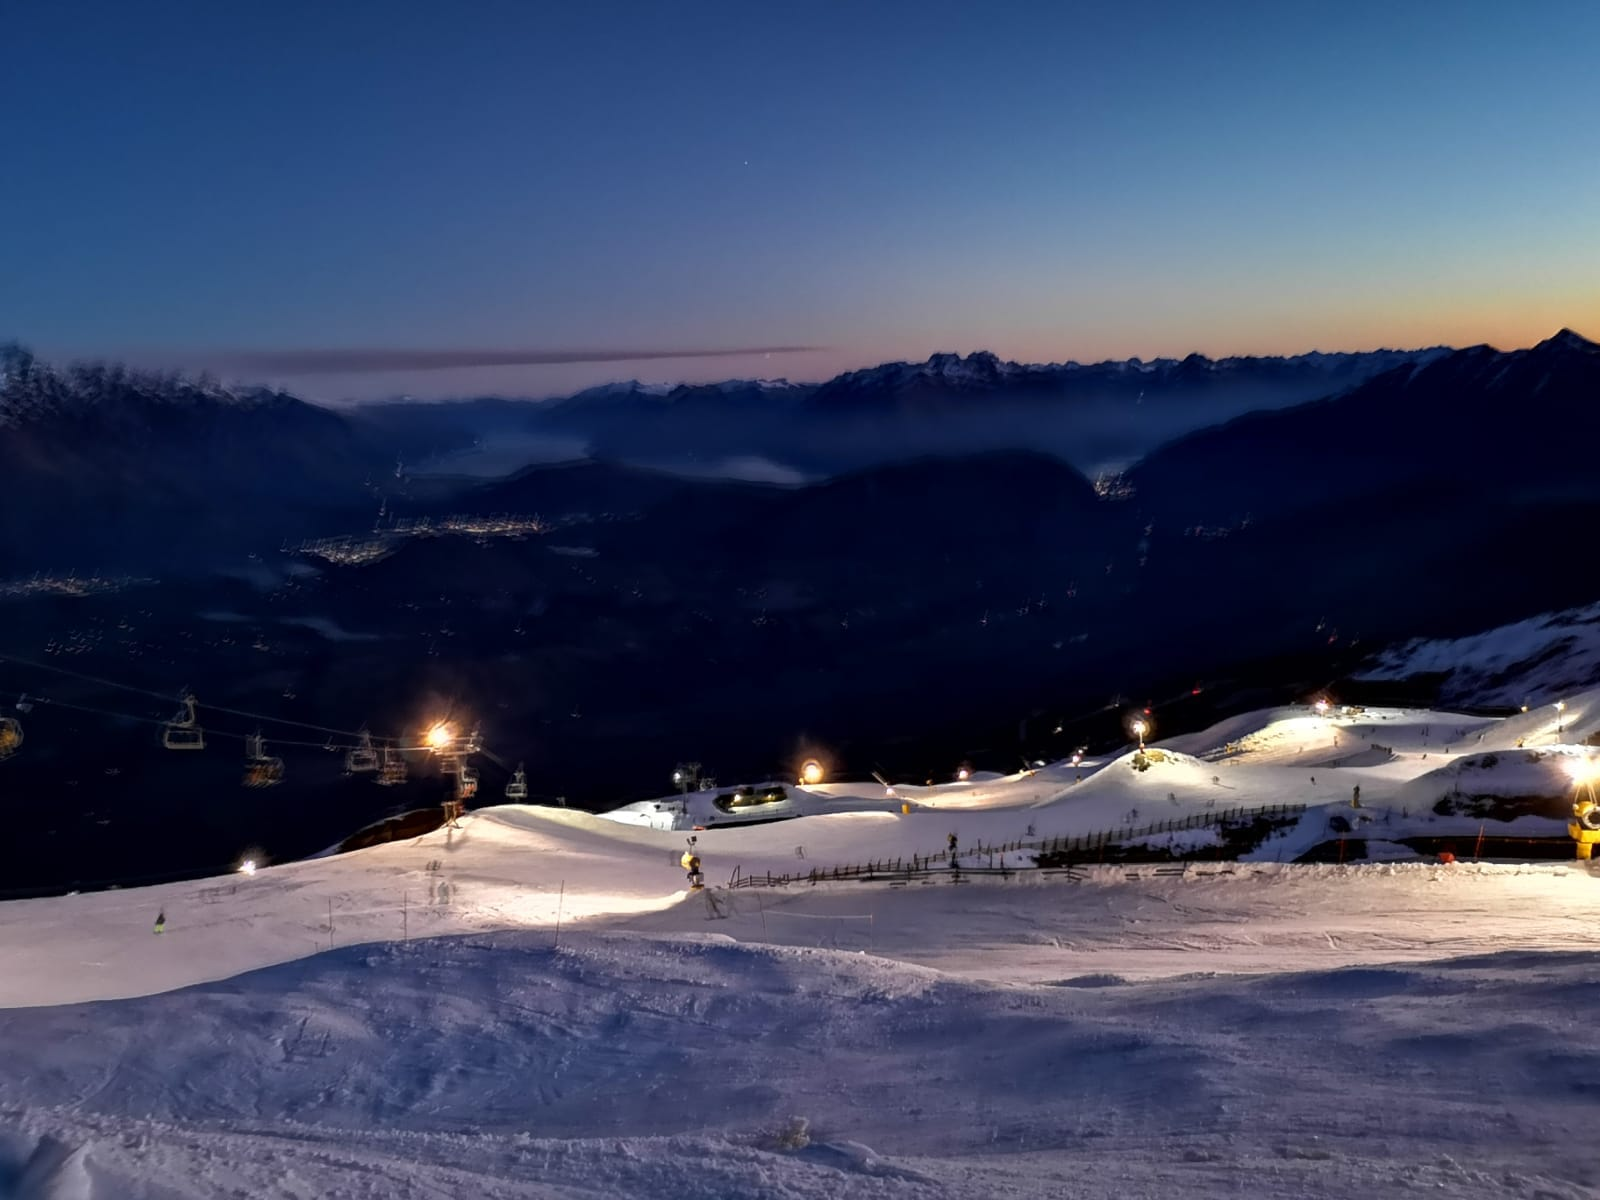 Floodlit ski slopes for night skiing at Coronet Peak